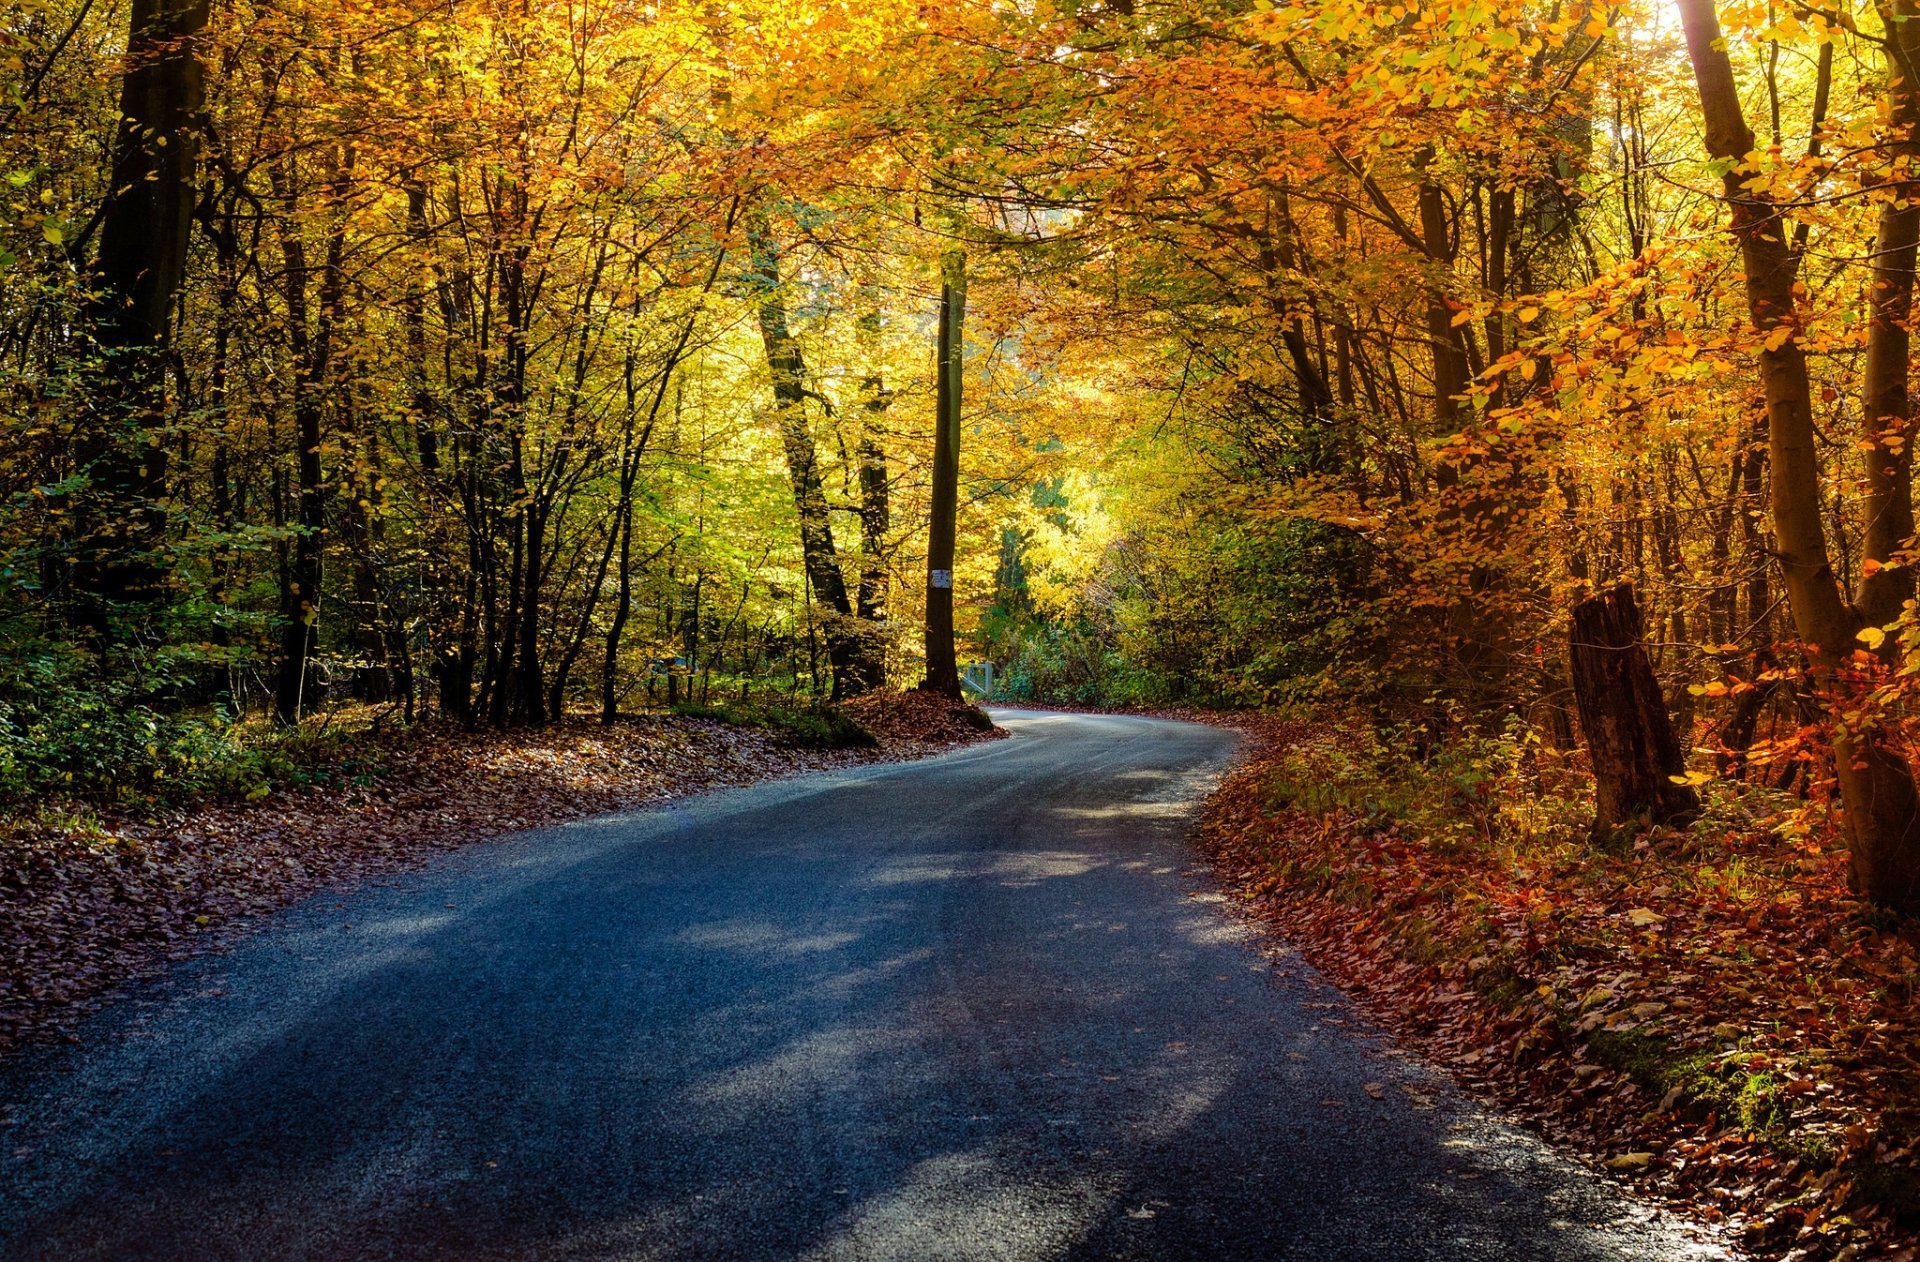 Man Made - Road  Nature Forest Fall Tree Foliage Wallpaper